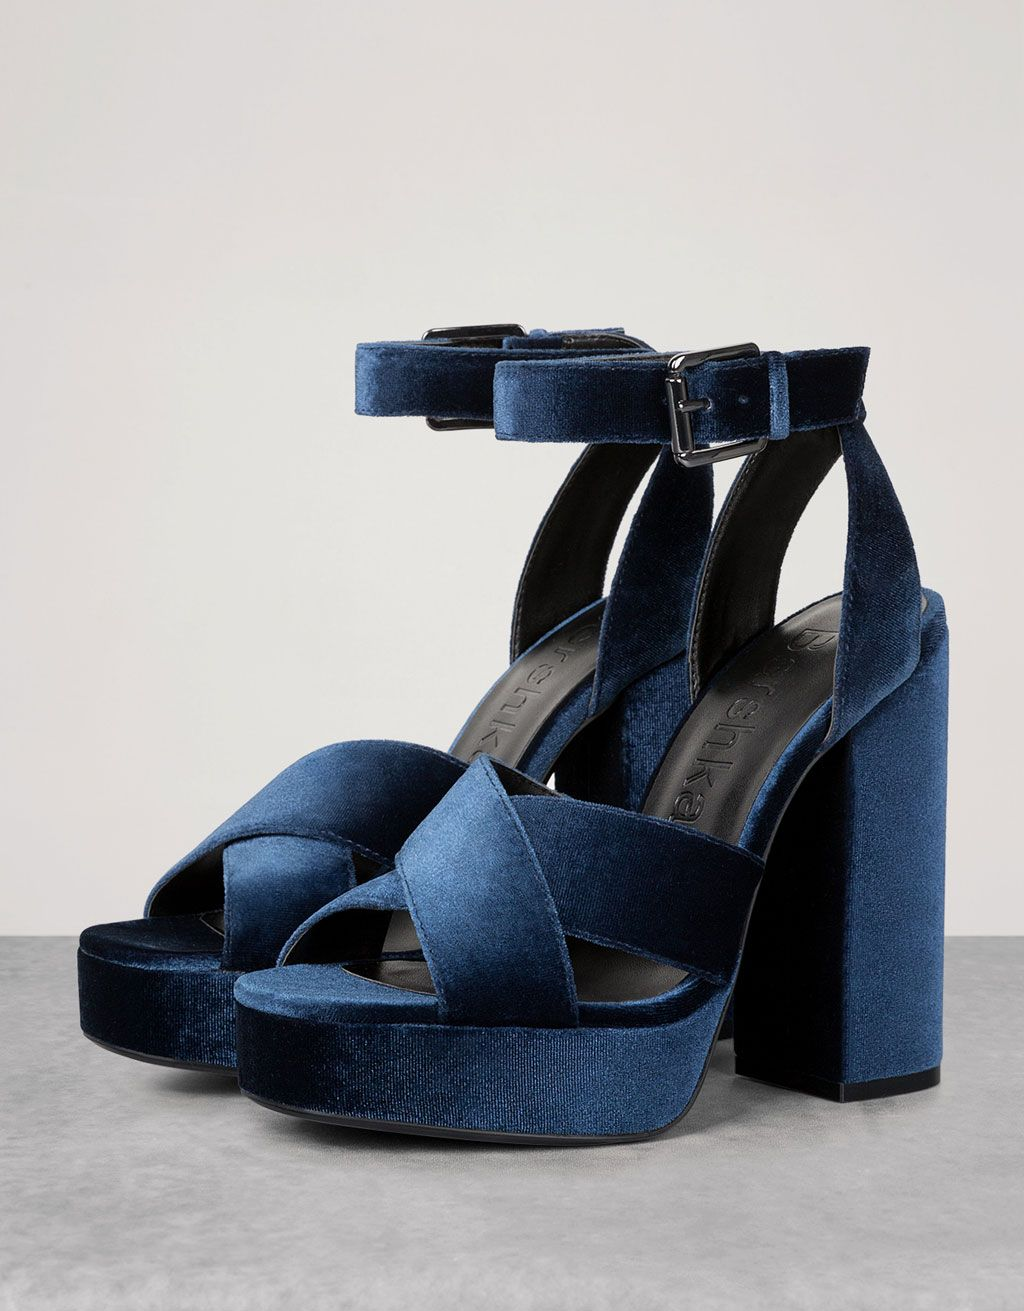 369af0cf6a96 Velvet platform sandals. Discover this and many more items in Bershka with  new products every week